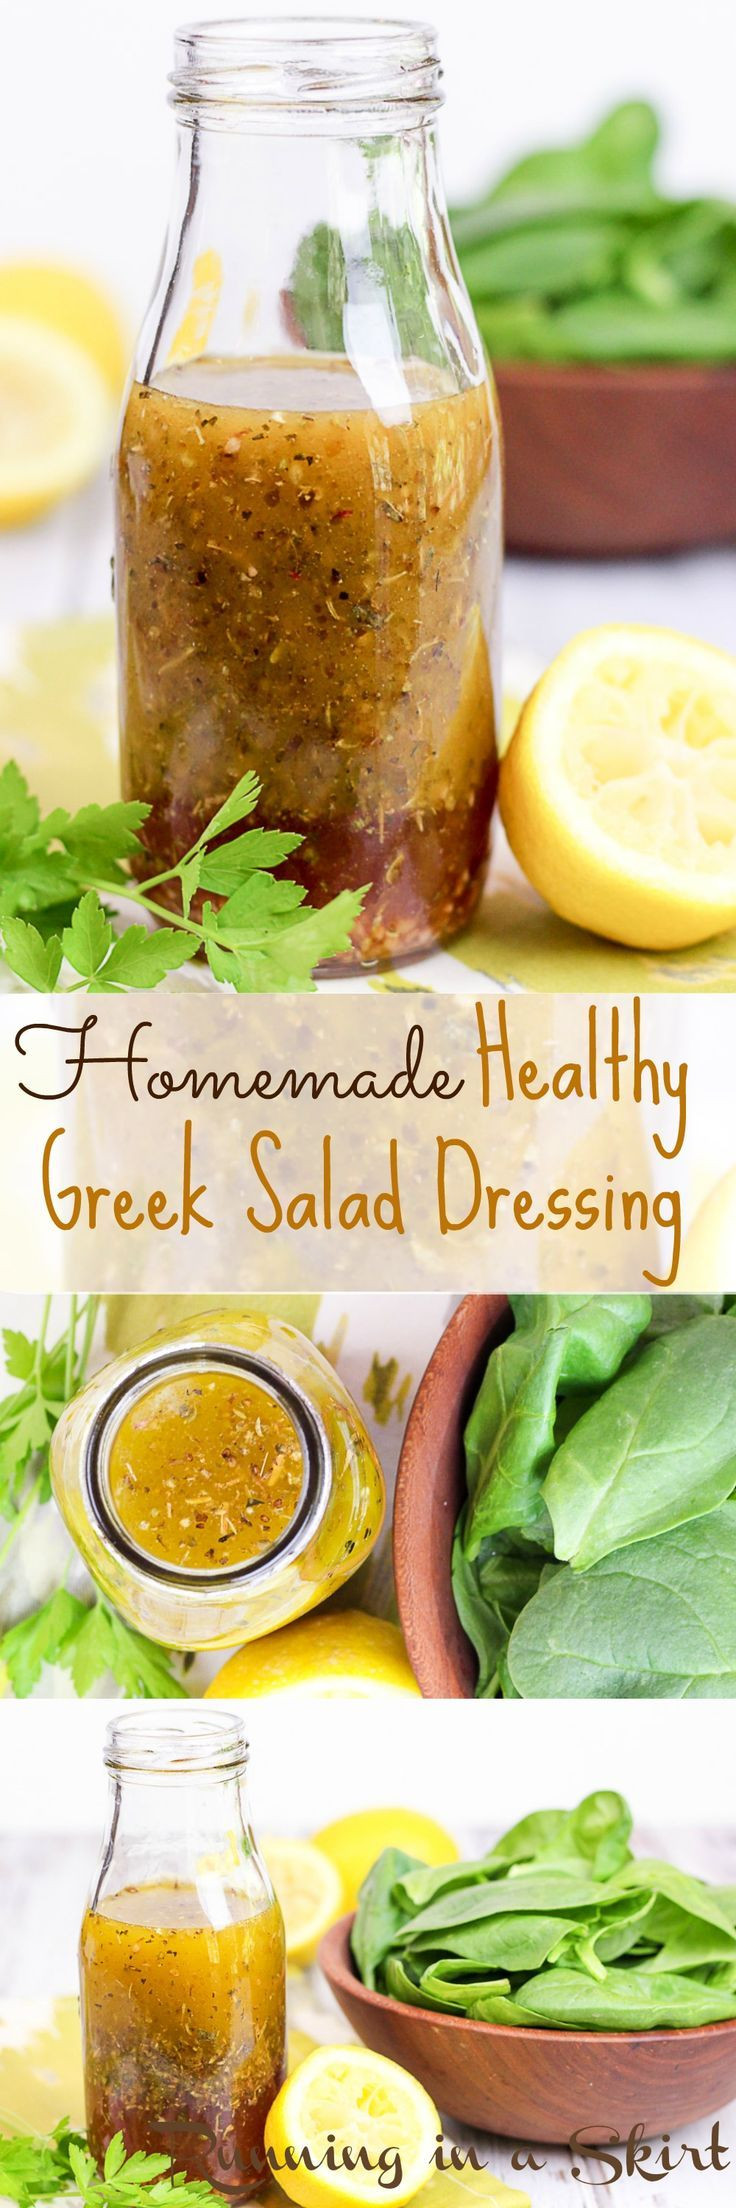 Recipes For Healthy Salad Dressings  Best 25 Clean eating salads ideas on Pinterest